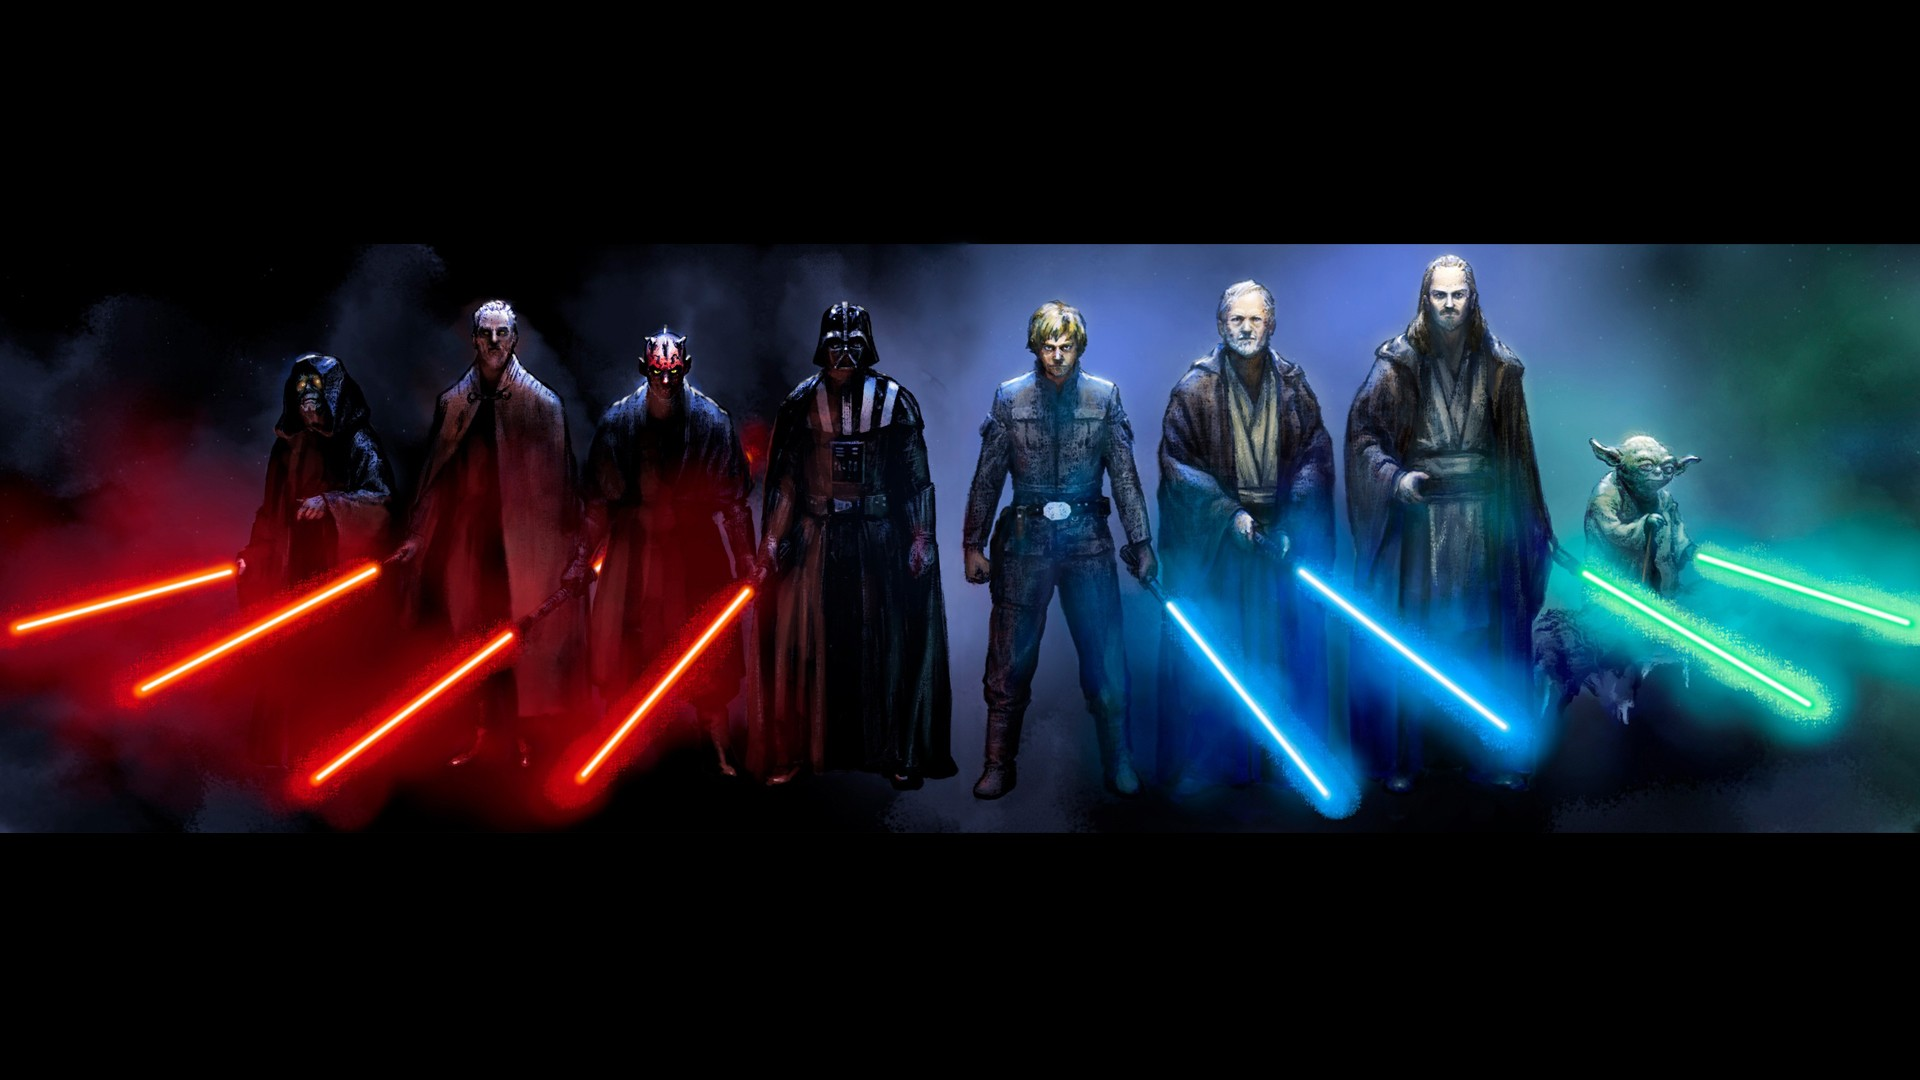 star wars sith and jedi wallpapers 36095